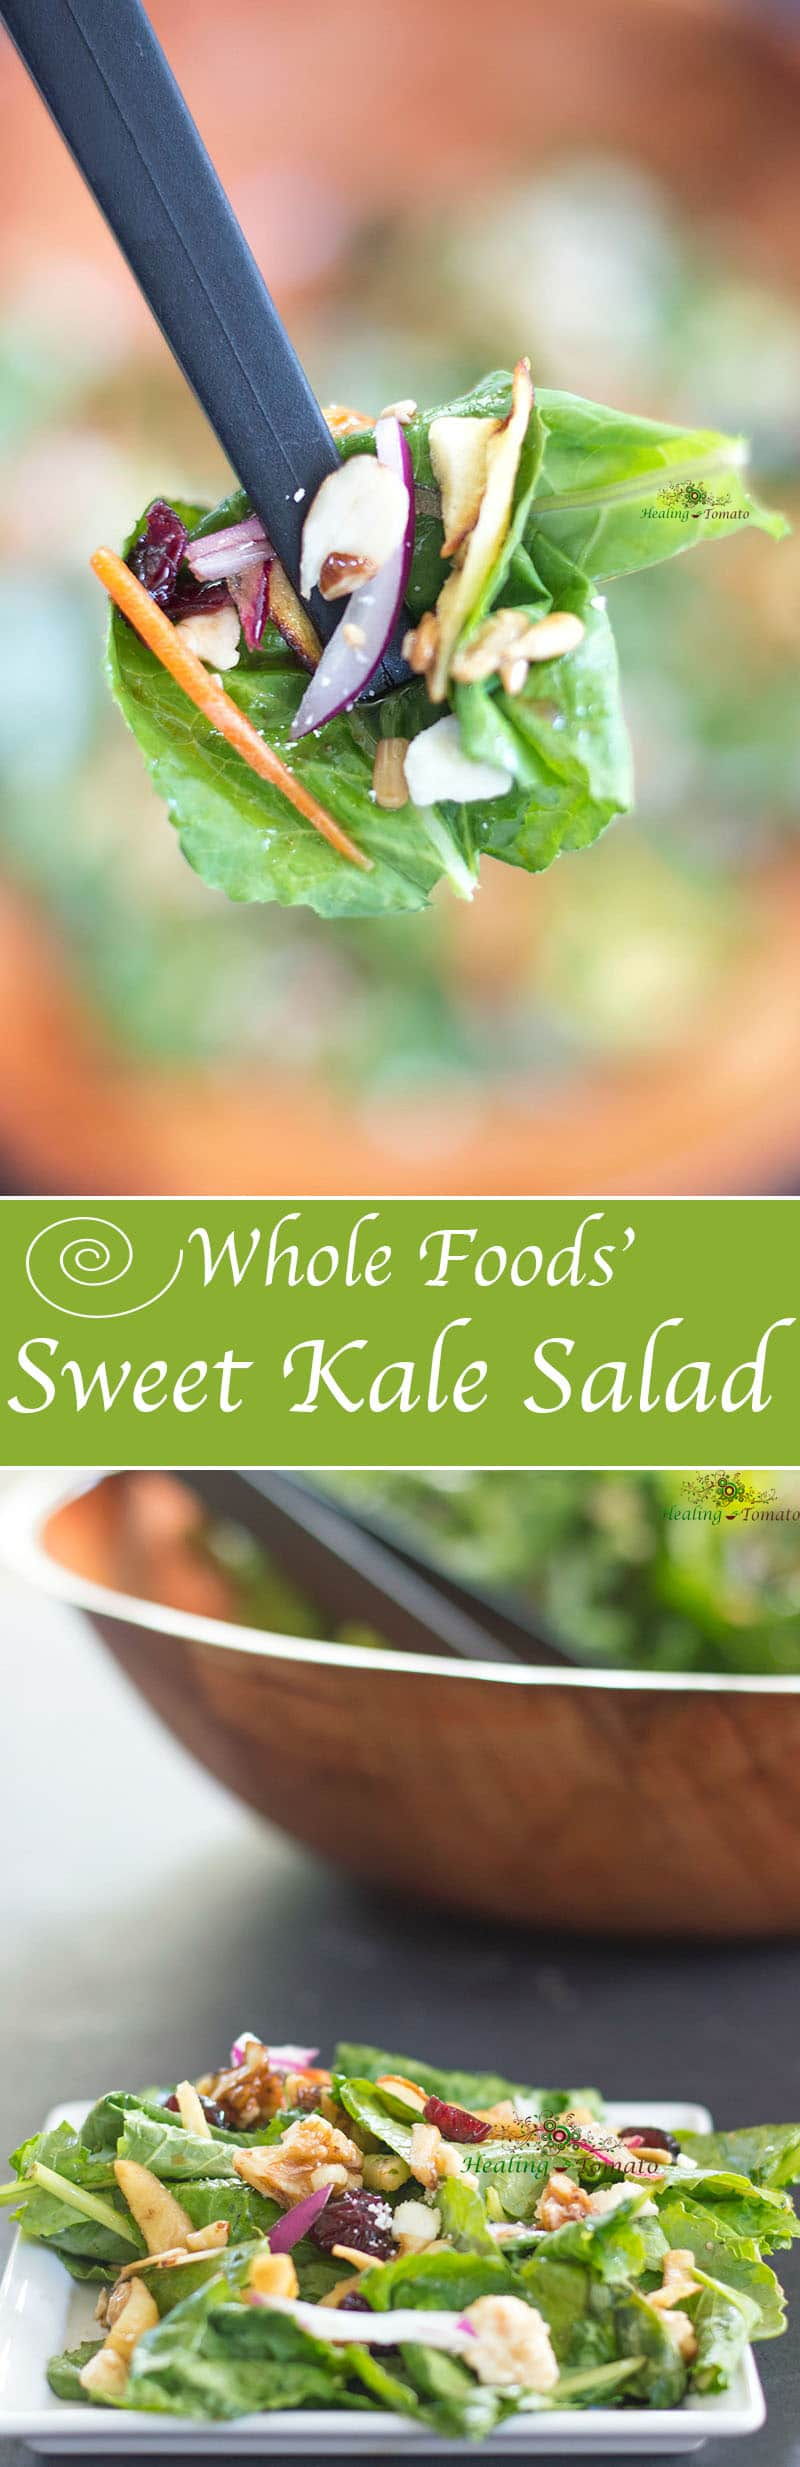 If you love Whole Food's Sweet Kale Salad, you can make it at home. This is a healthy salad that takes only 15 min to put together. Includes healthy nuts